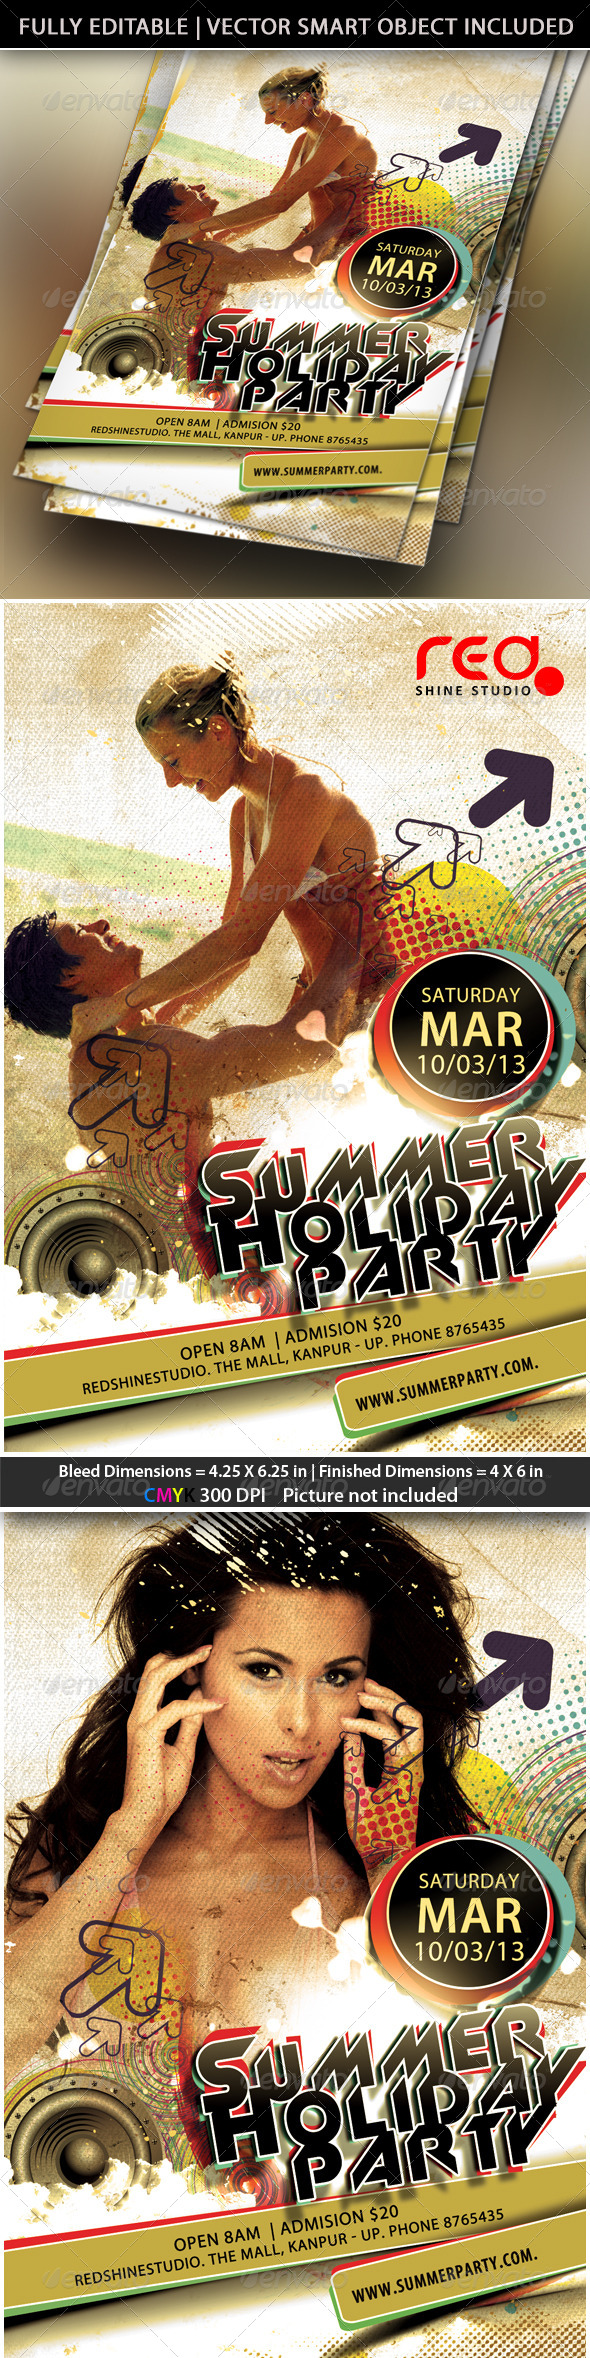 GraphicRiver Summer Holiday Party Flyer 4233370